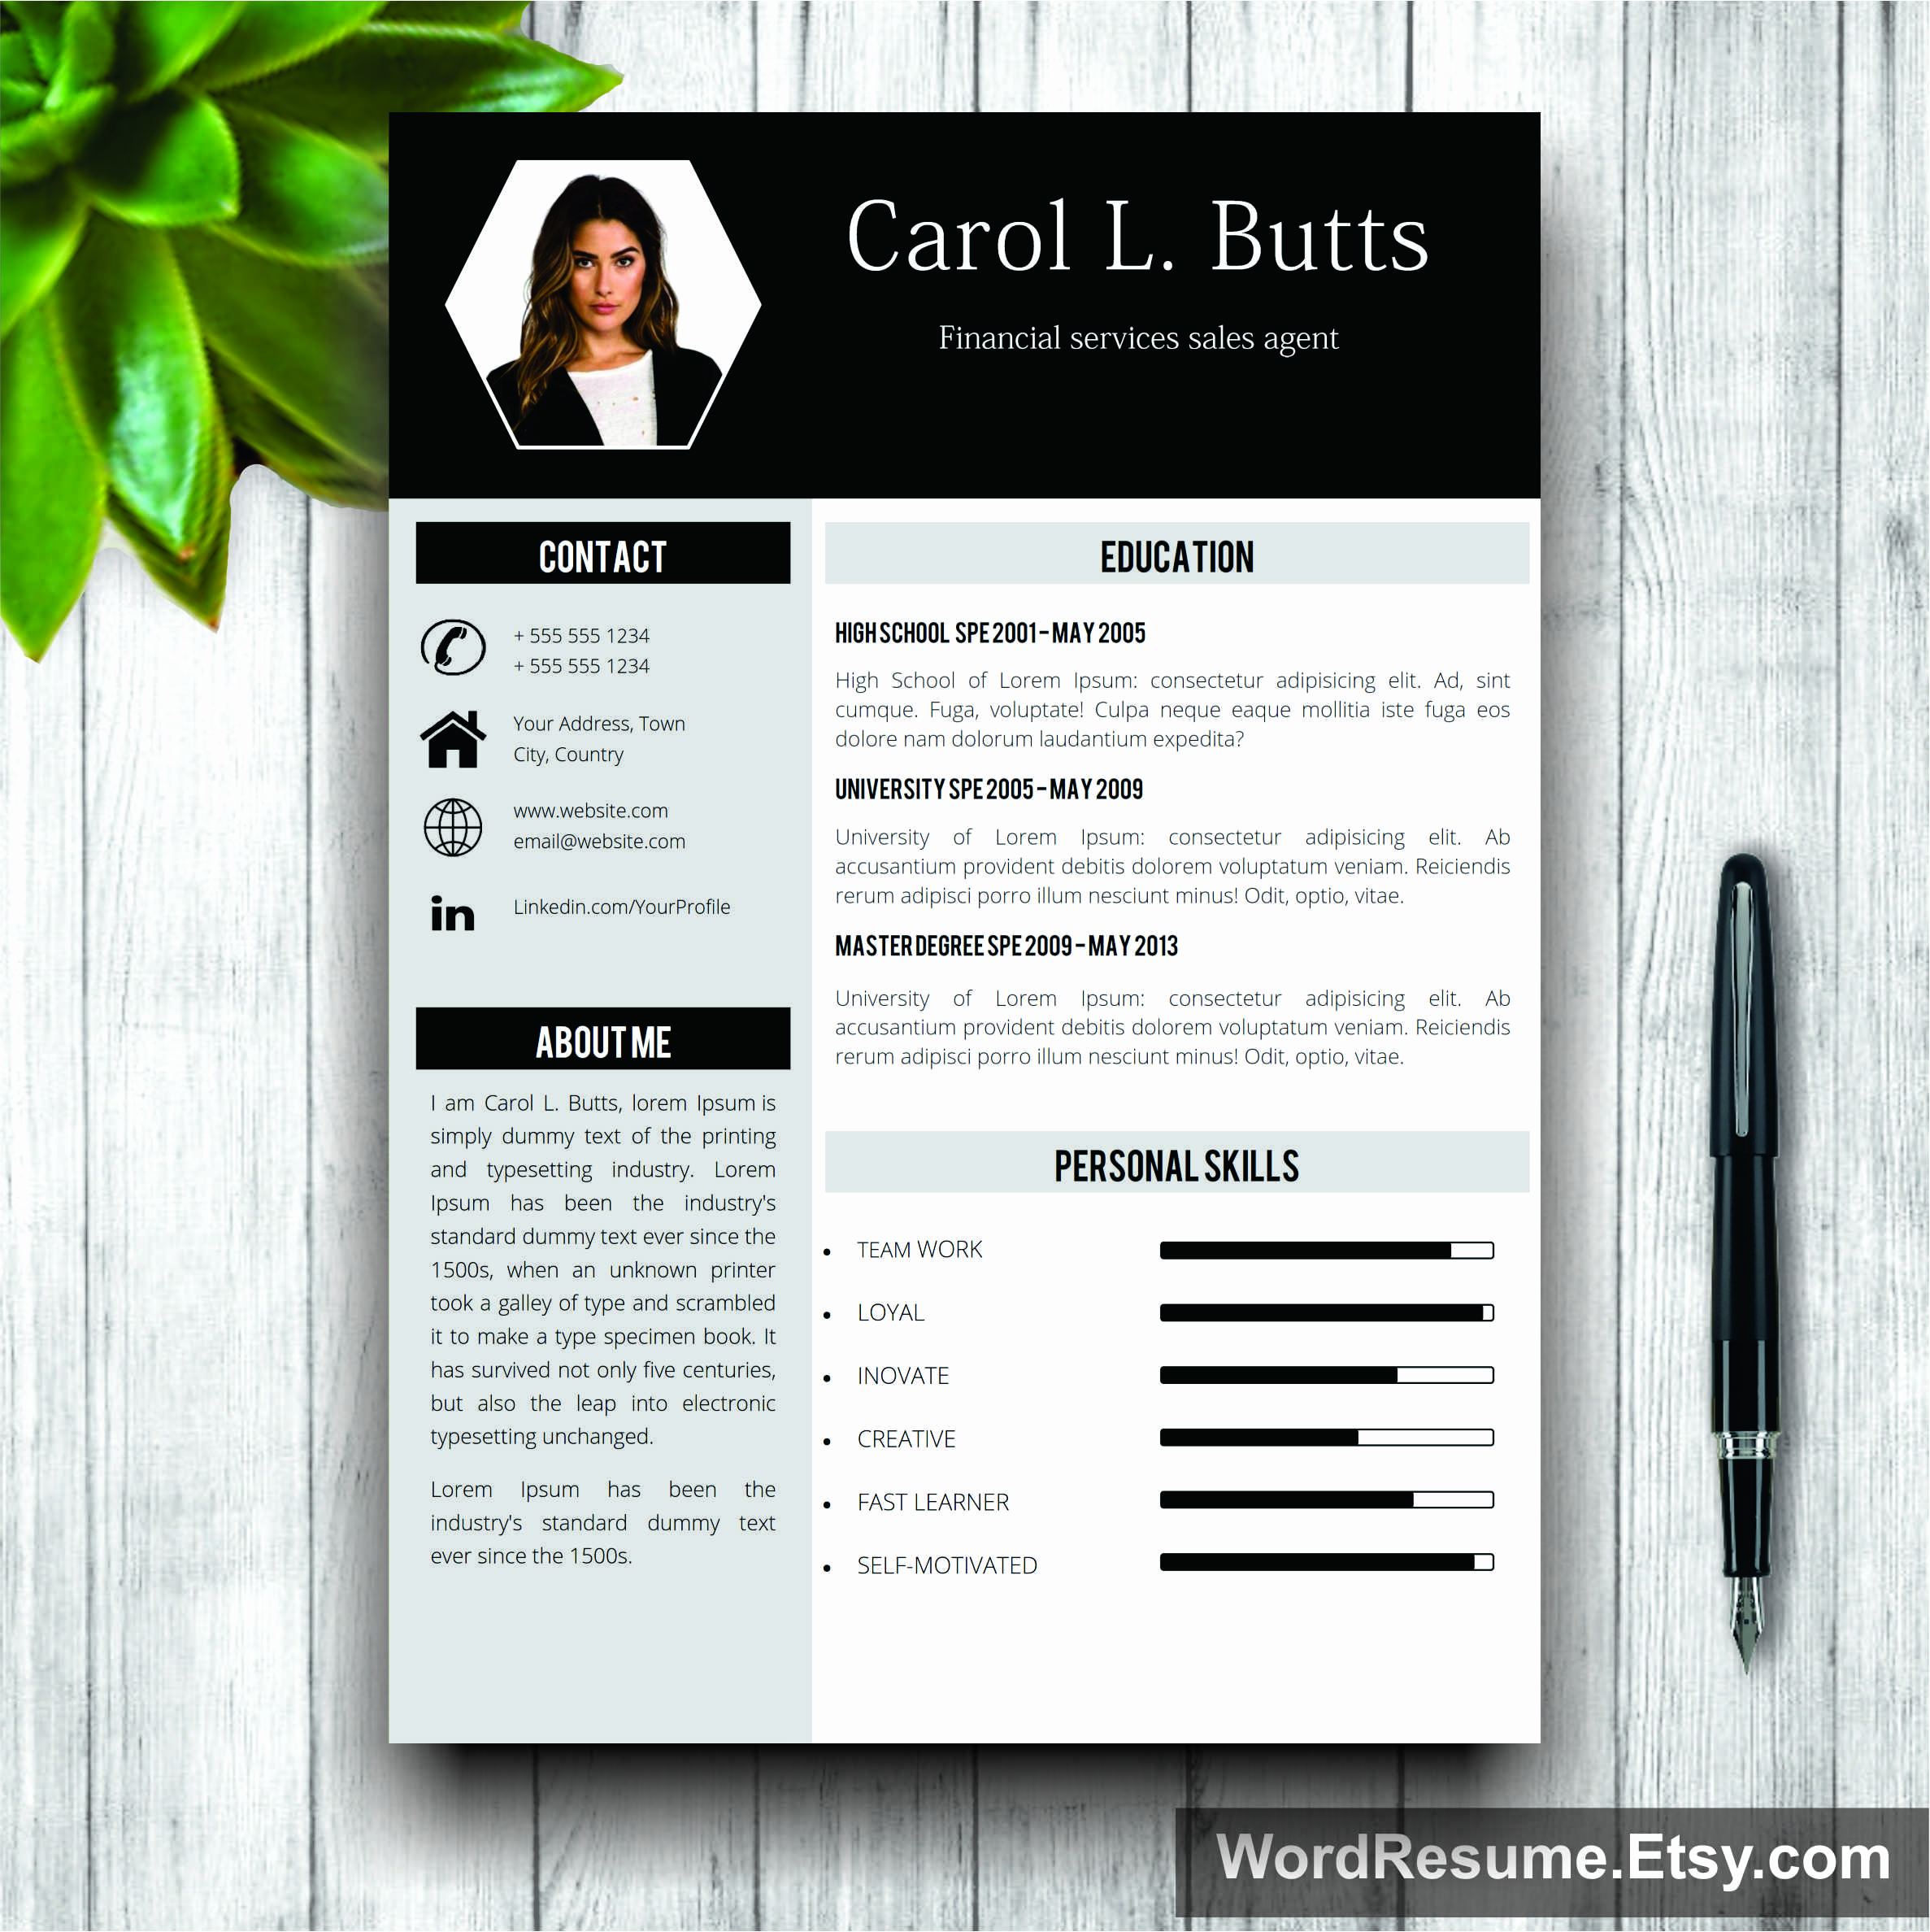 Resume Templates To Buy